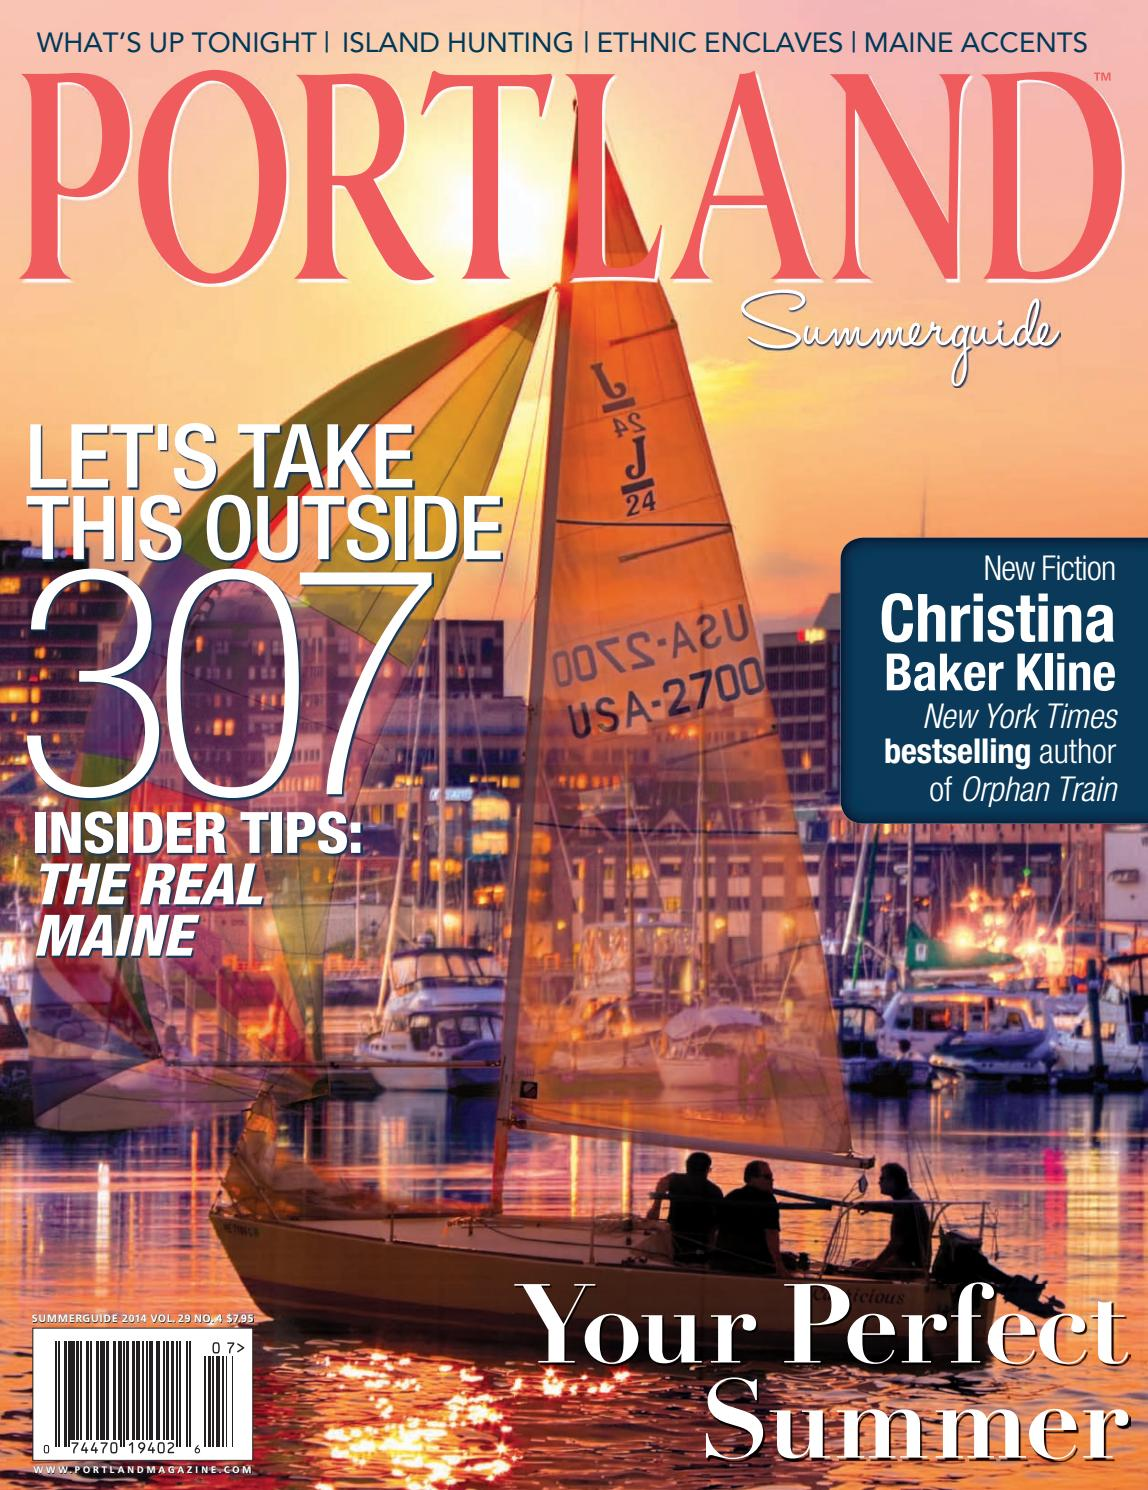 Portland Monthly Magazine Summerguide 2014 By